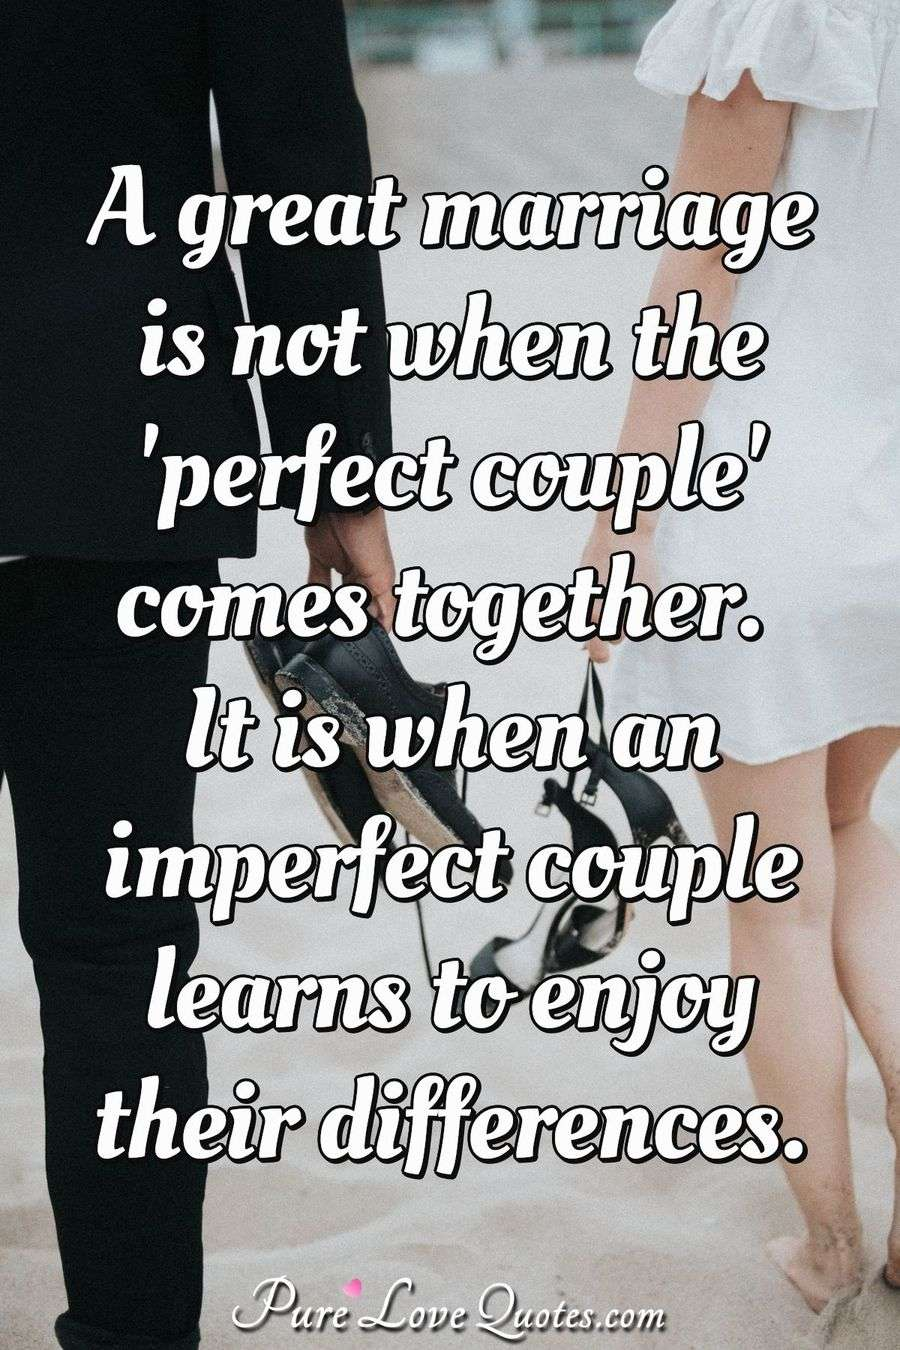 a great marriage is not when the perfect couple comes together